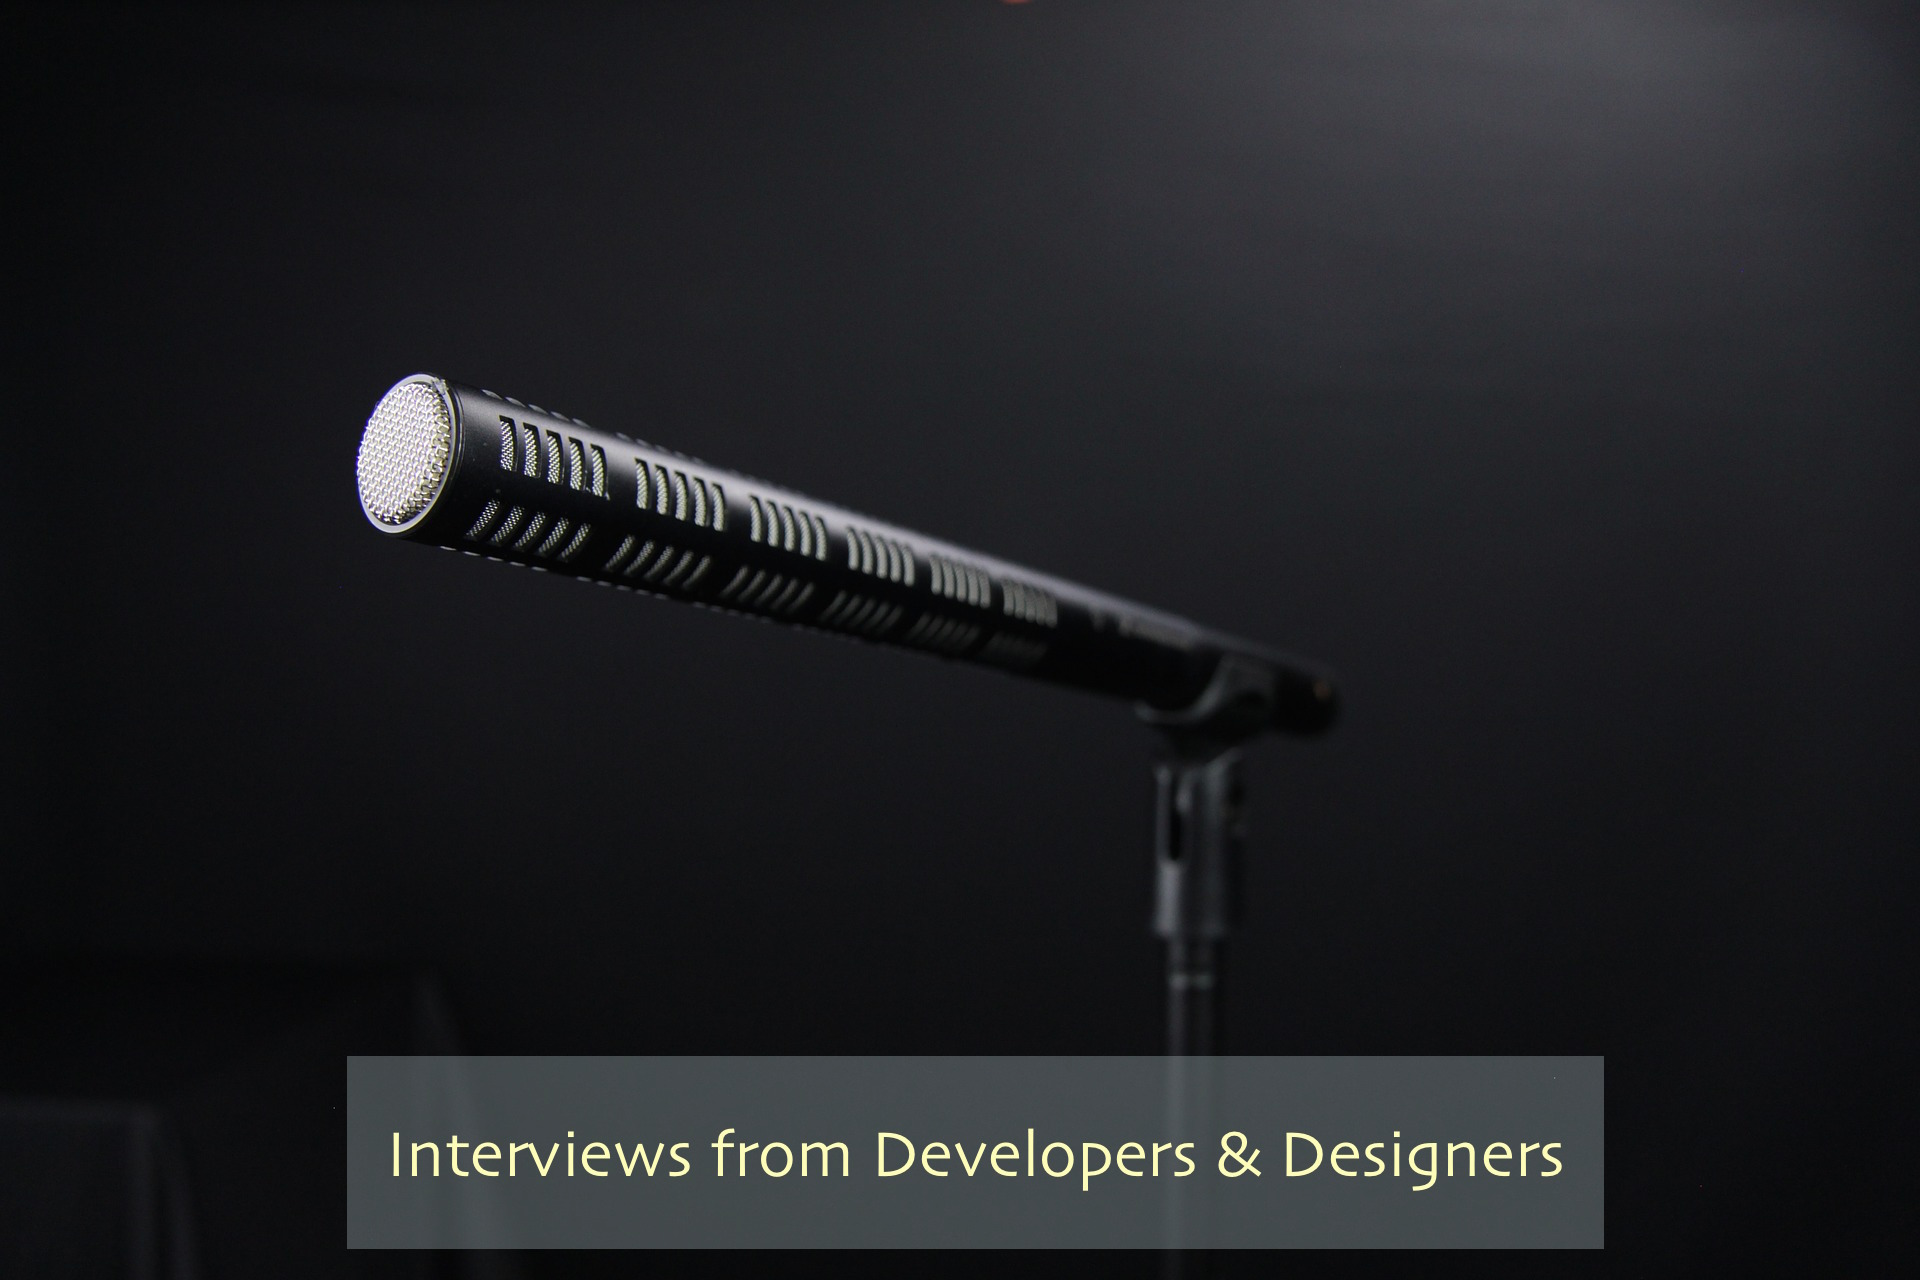 Interviews from Developers & Designers